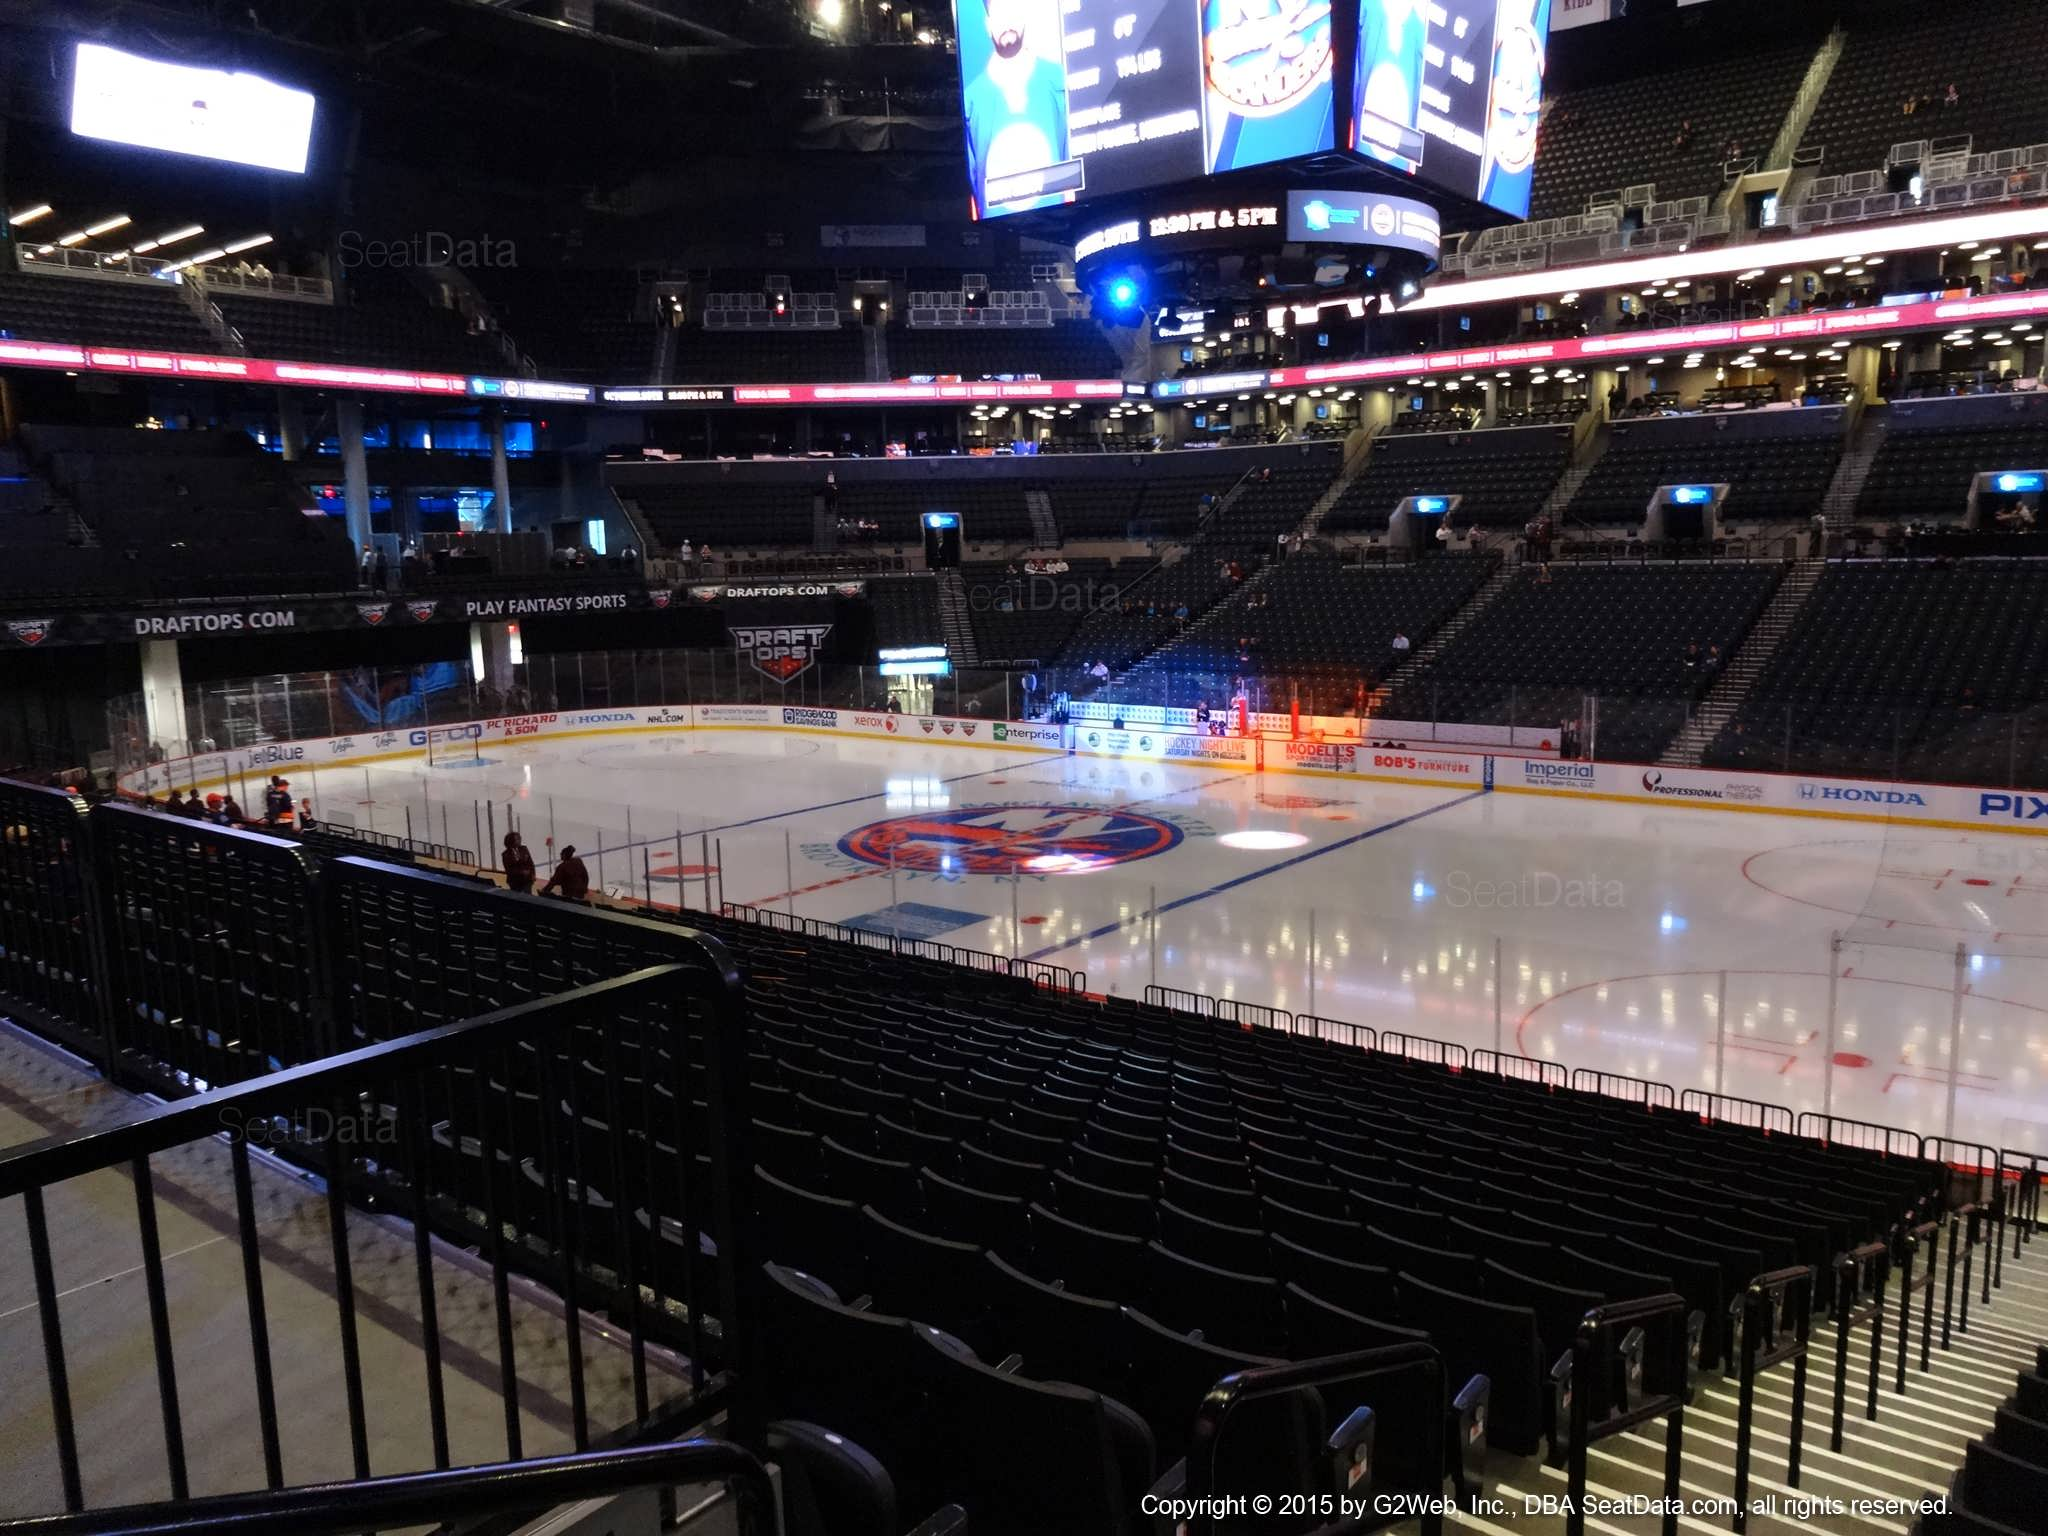 Seat view from section 22 at the Barclays Center, home of the New York Islanders